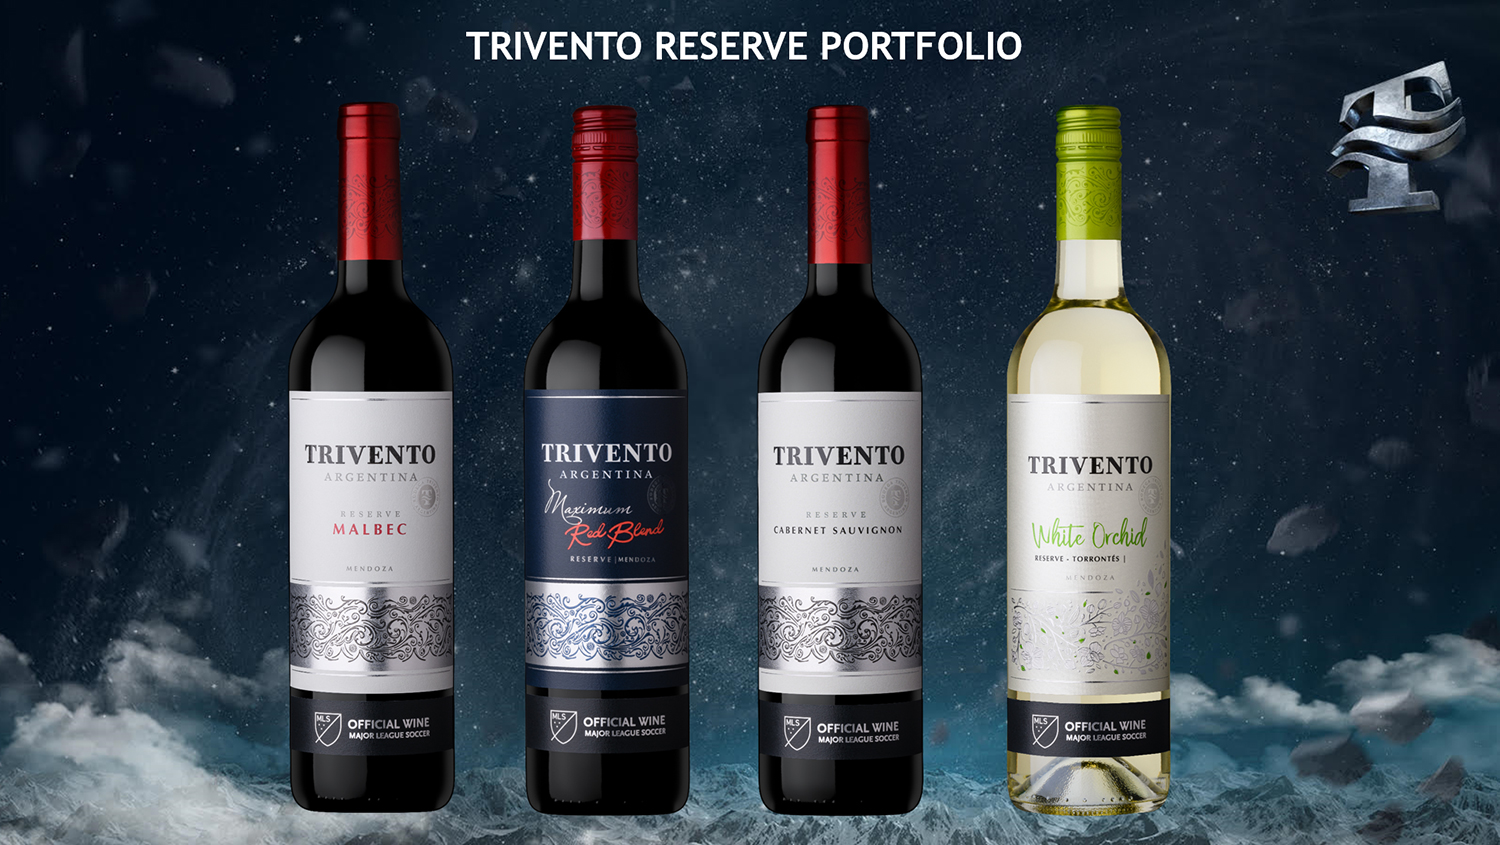 The portfolio includes the #3 best-selling Malbec in the U.S.; Maximum Red Blend, named for Trivento Reserve Winemaker Maximiliano Ortiz; a Cabernet Sauvignon, and White Orchid Torrontés.